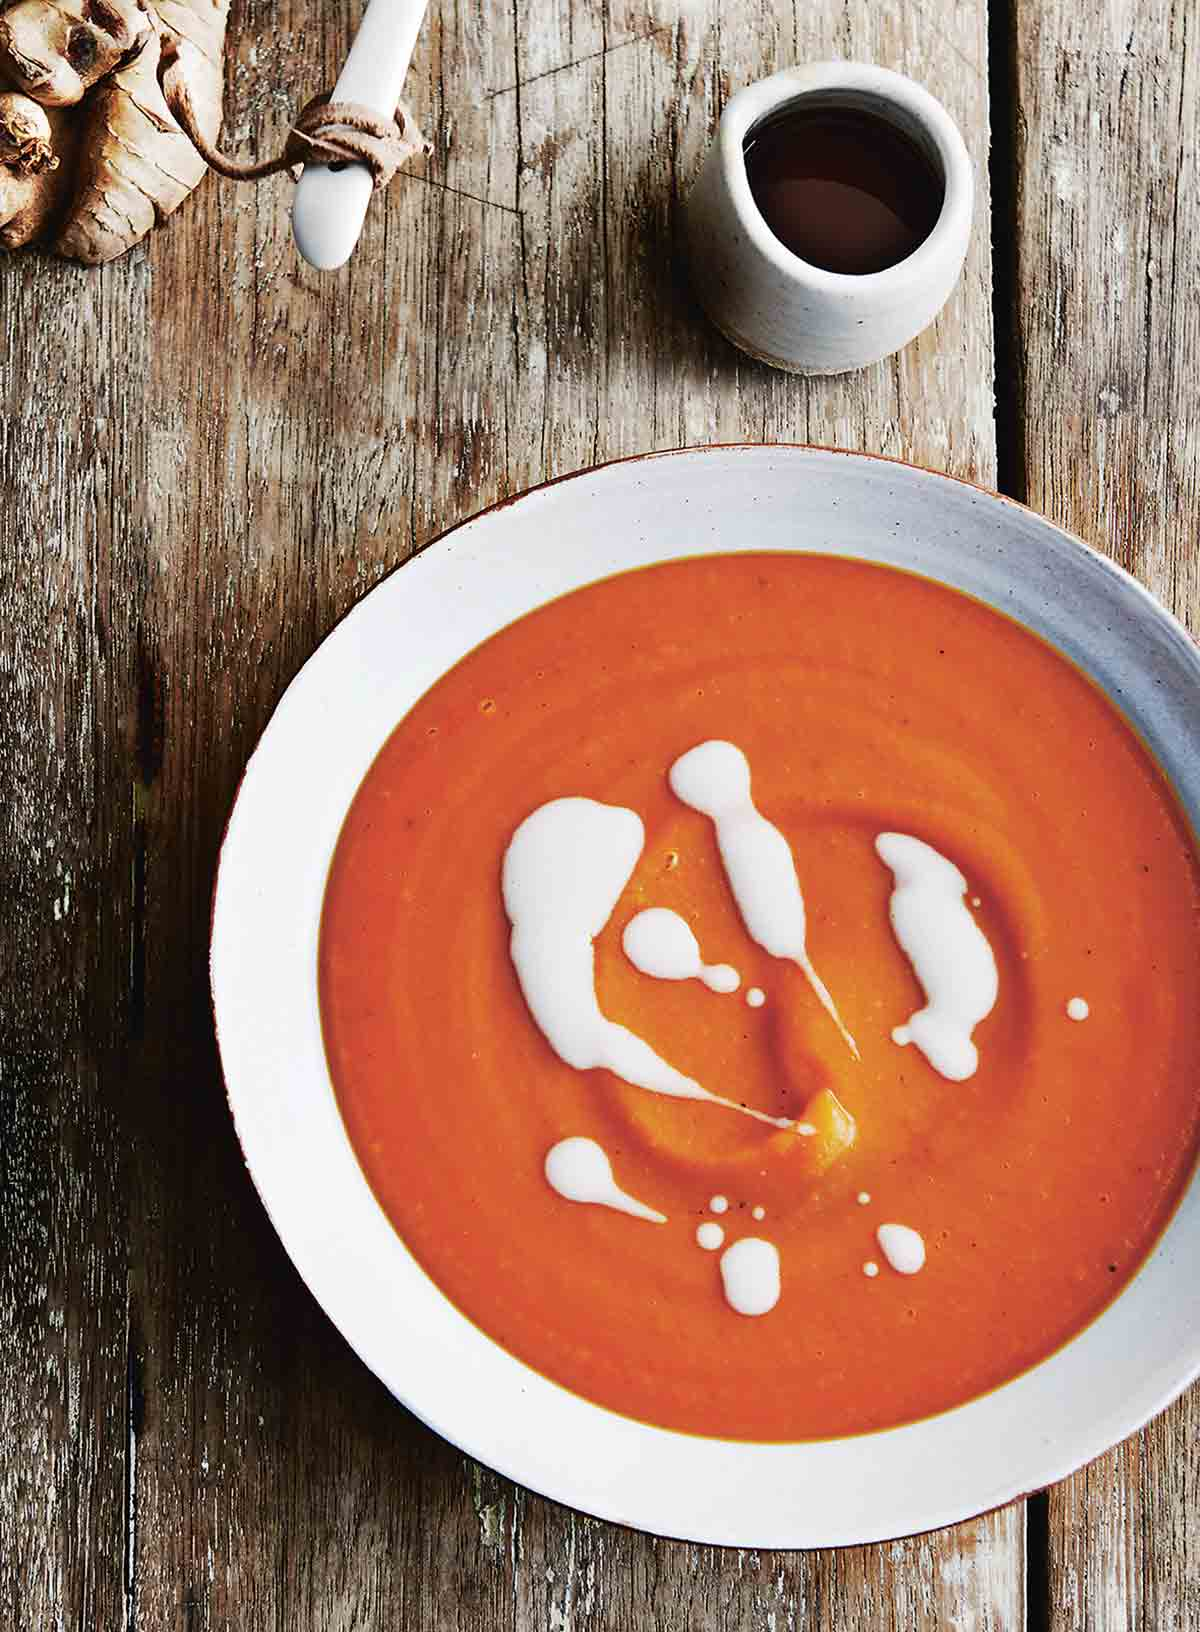 A white earthenware bowl of sweet potato soup with coconut milk drizzled over the top.